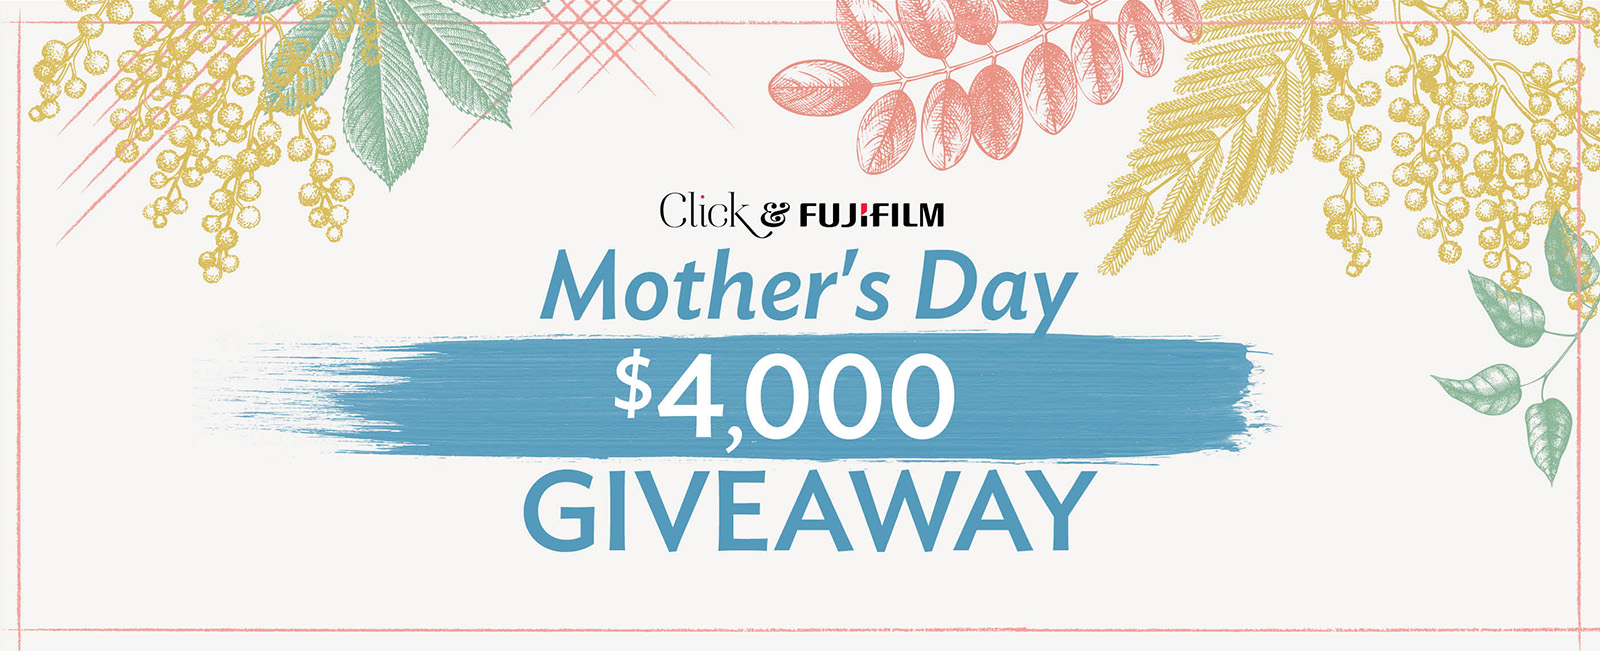 Mother's Day giveaway 2019